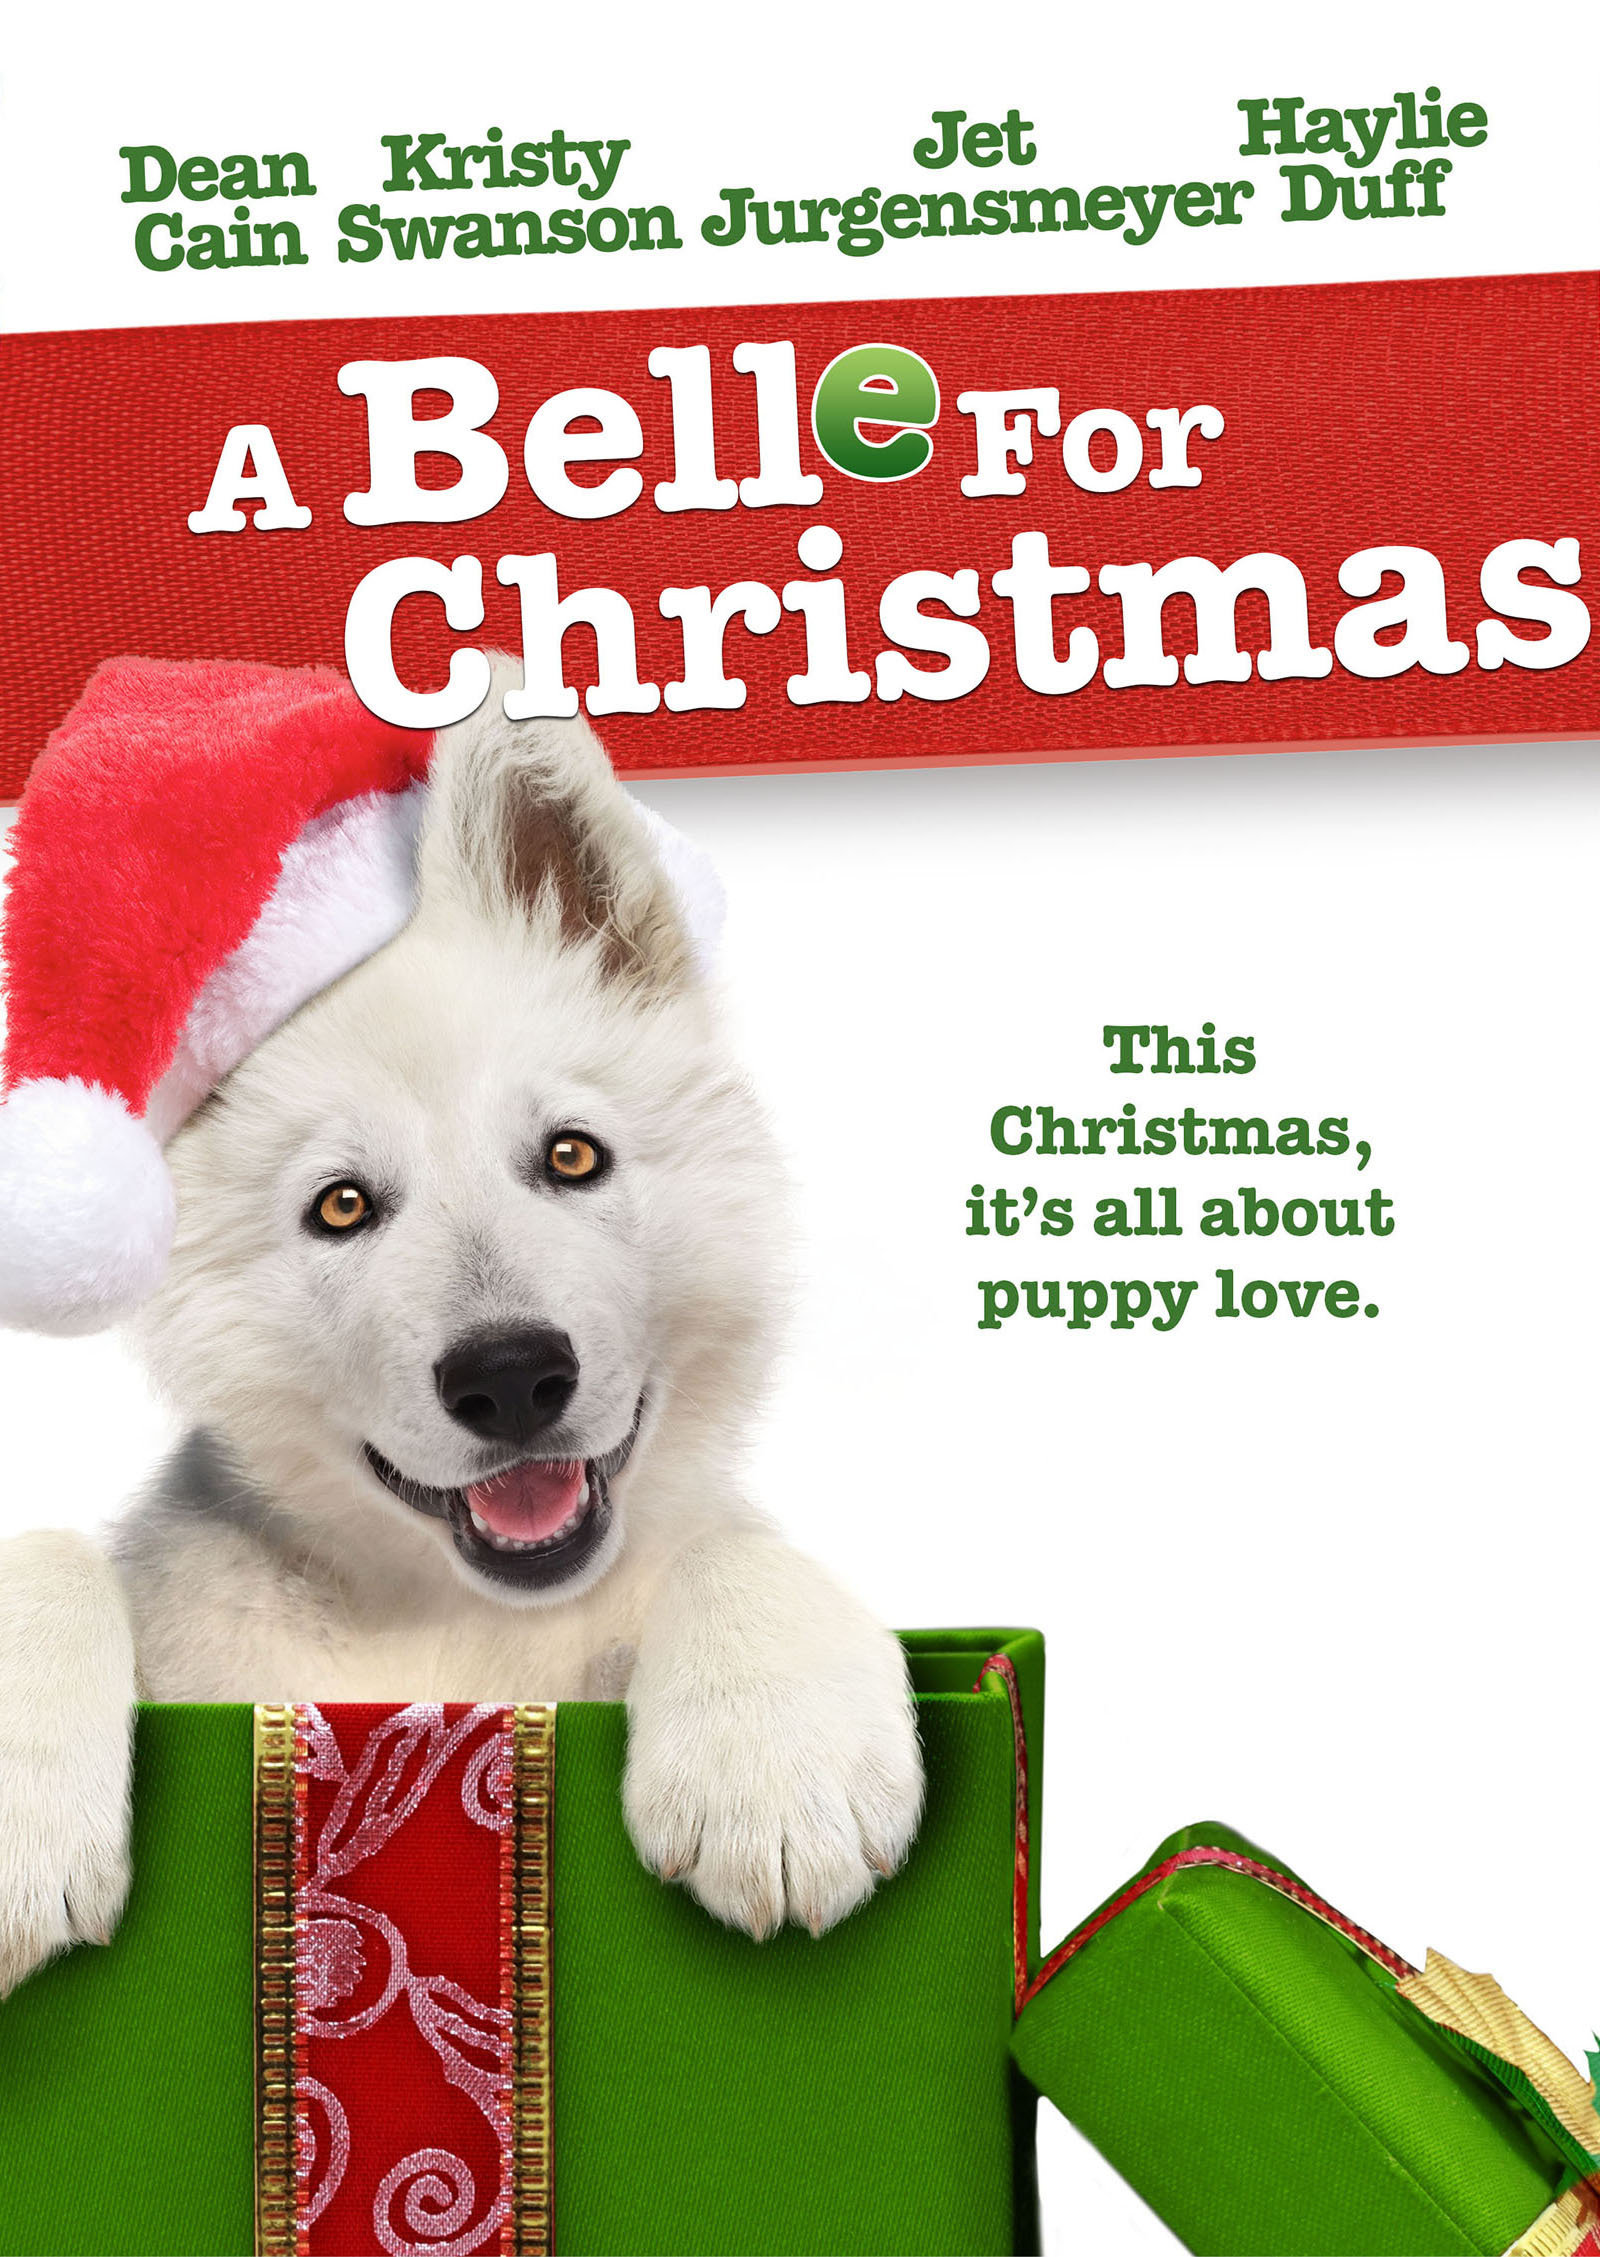 A Belle for Christmas (2014) - IMDb